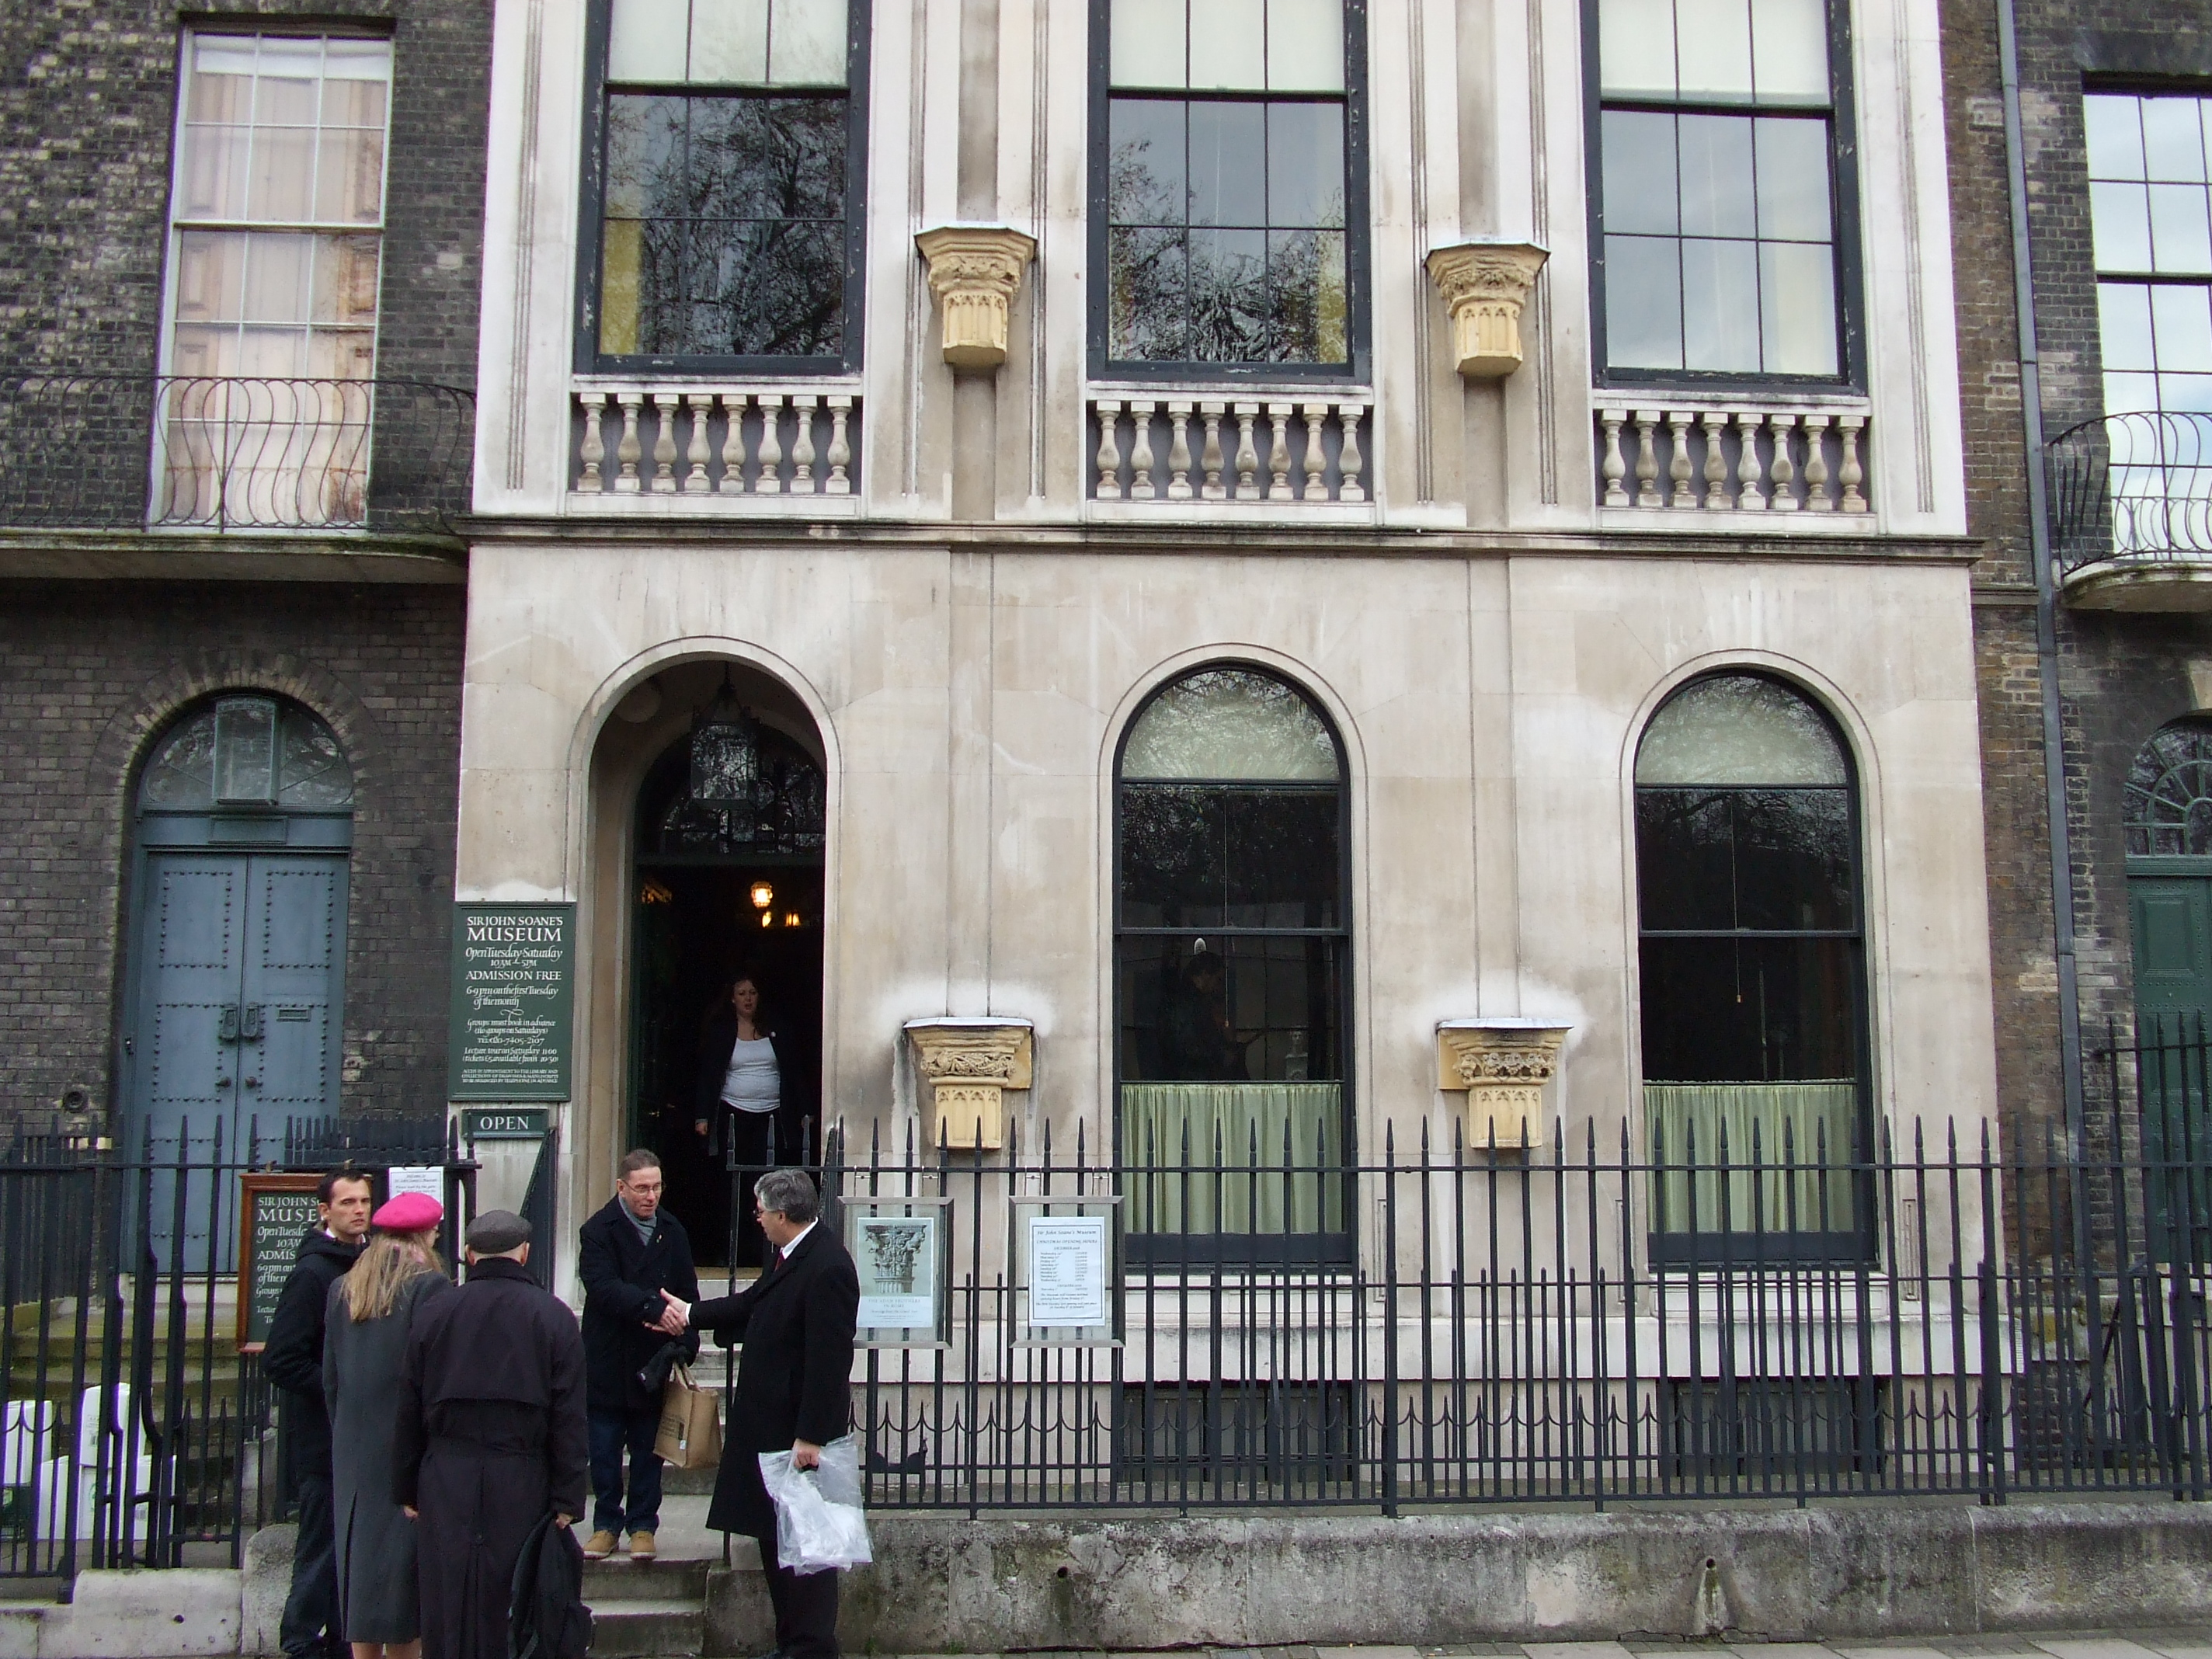 Sir John Soane's Museum and Library